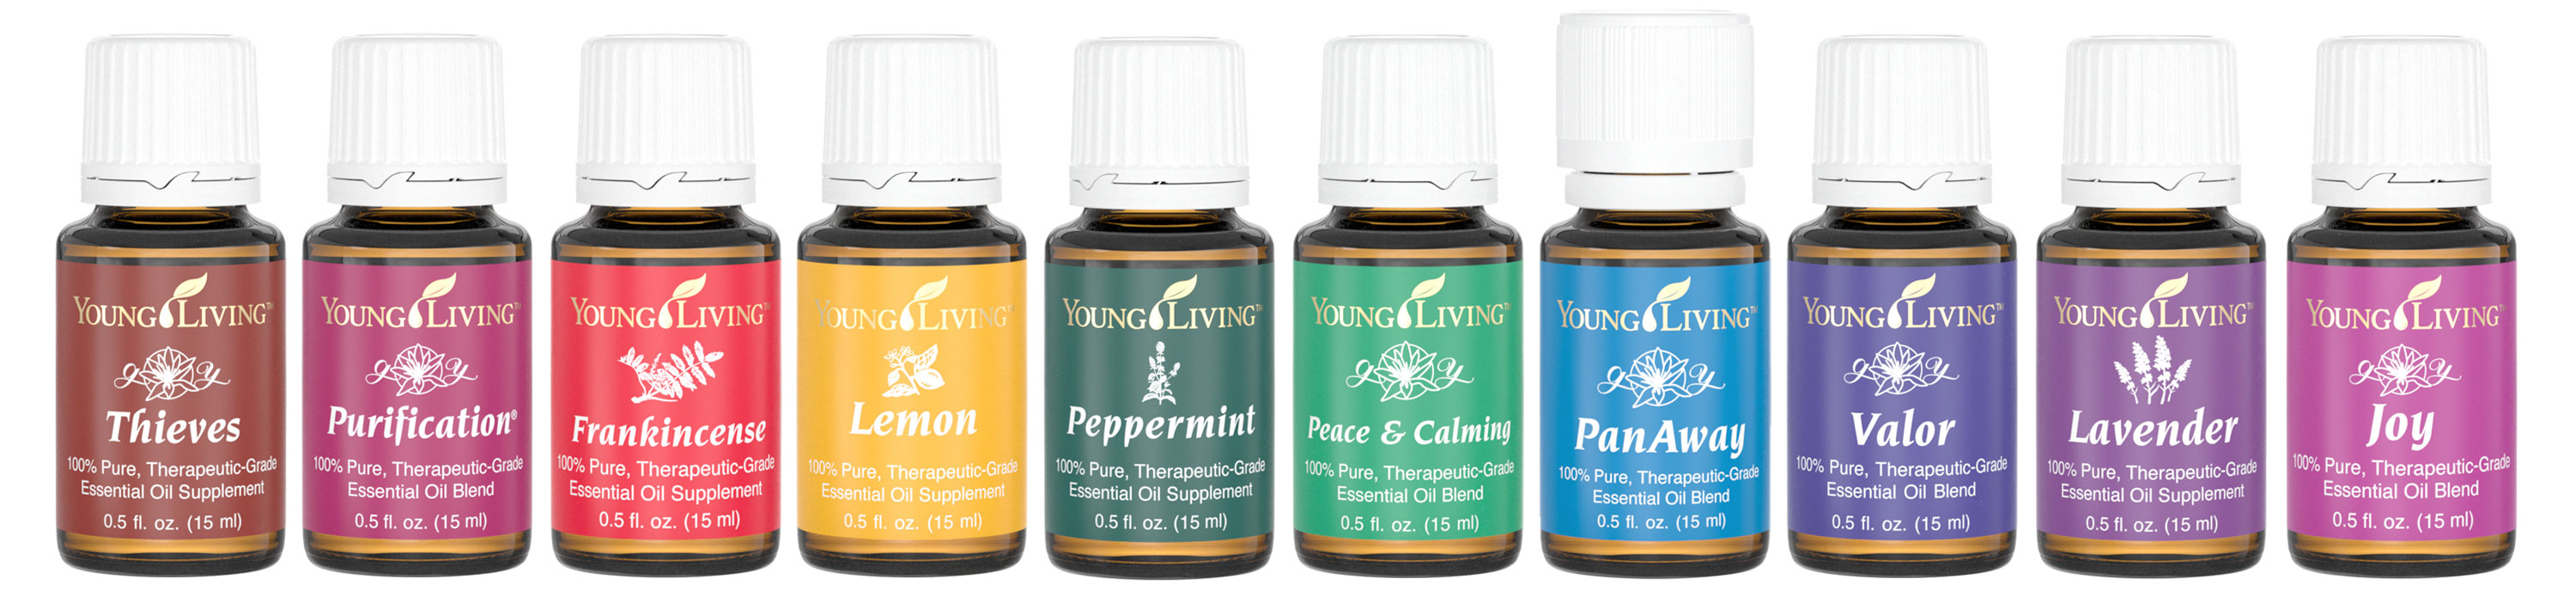 youngliving2